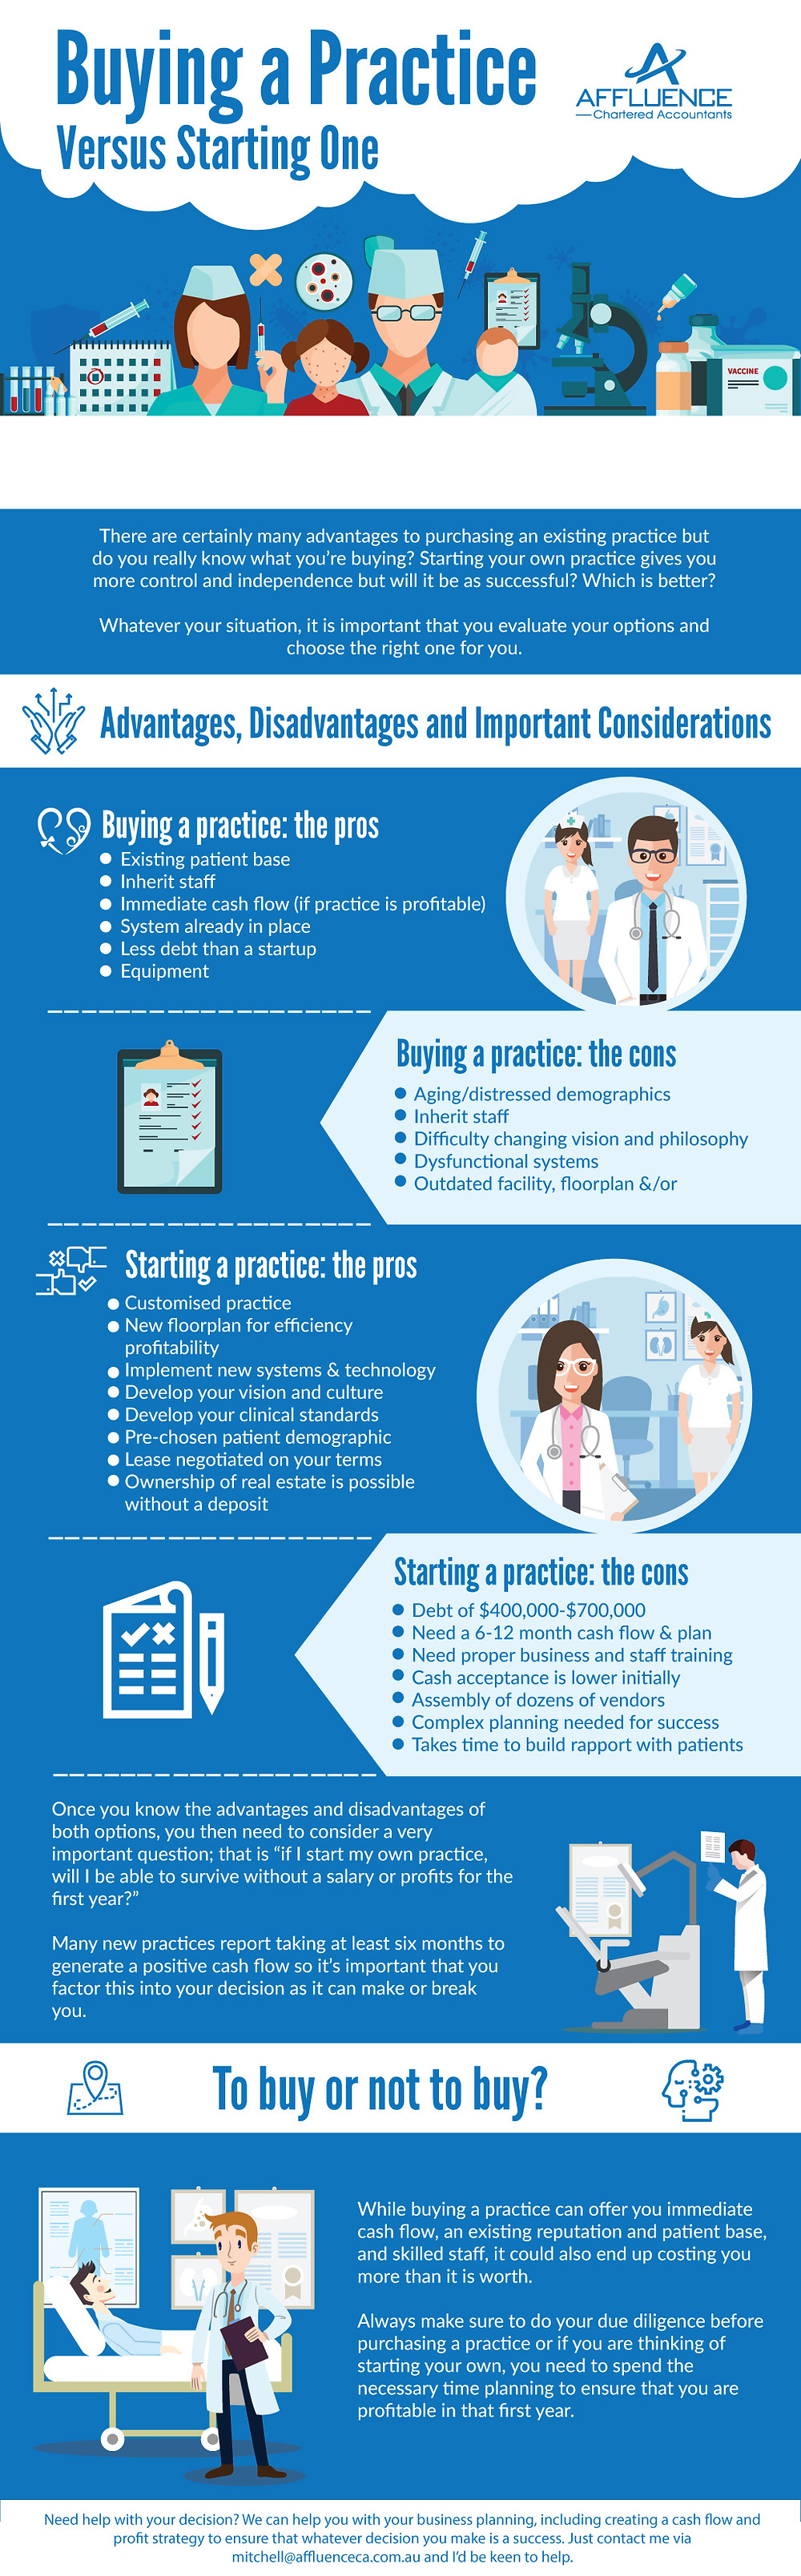 Buying A Practice Versus Starting One